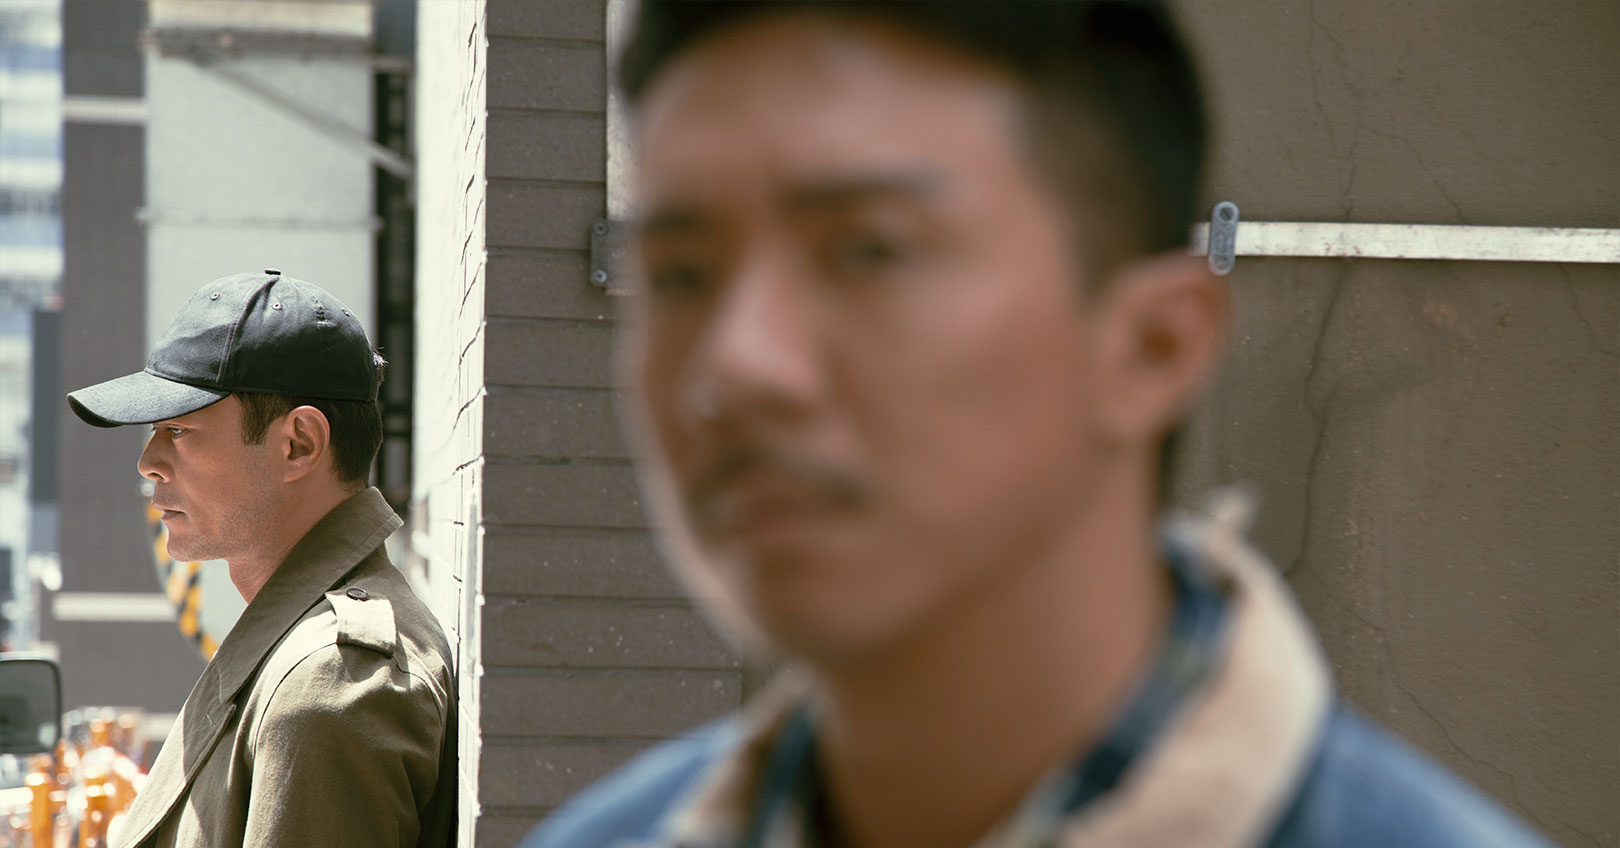 A Witness Out of the Blue - Louis Koo and Louis Cheung